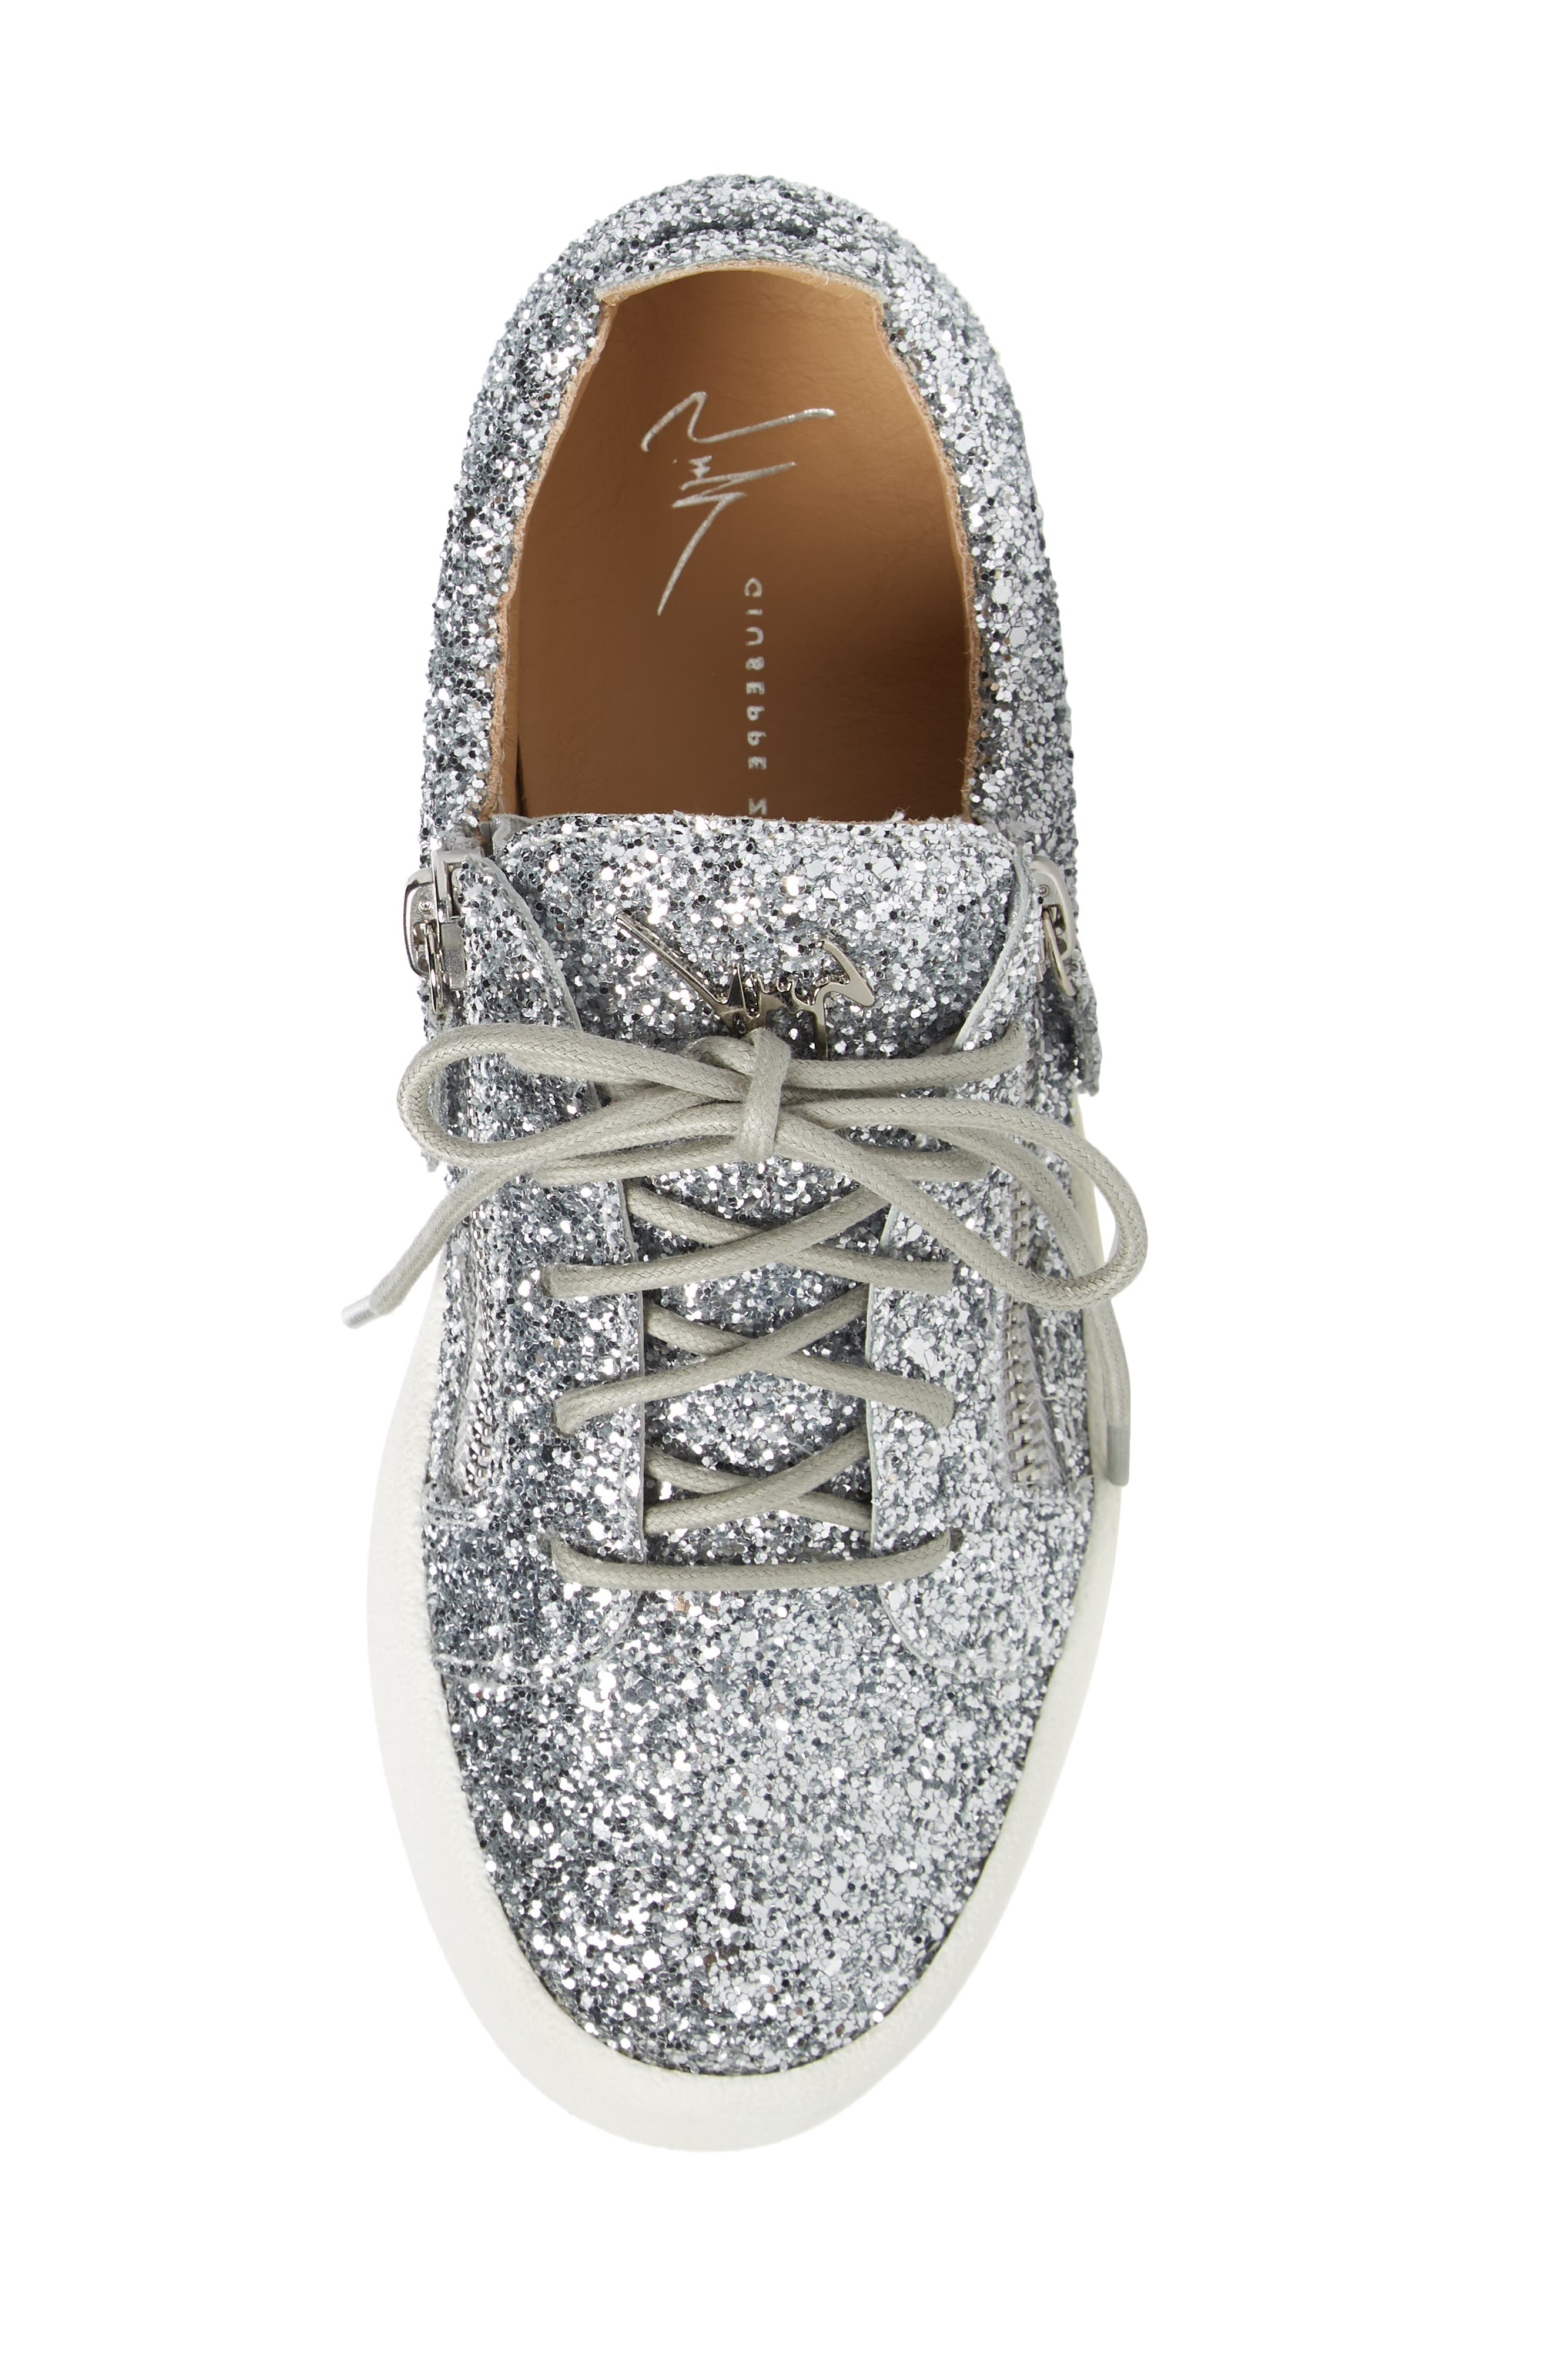 May London Low Top Sneaker,                             Alternate thumbnail 5, color,                             SILVER GLITTER